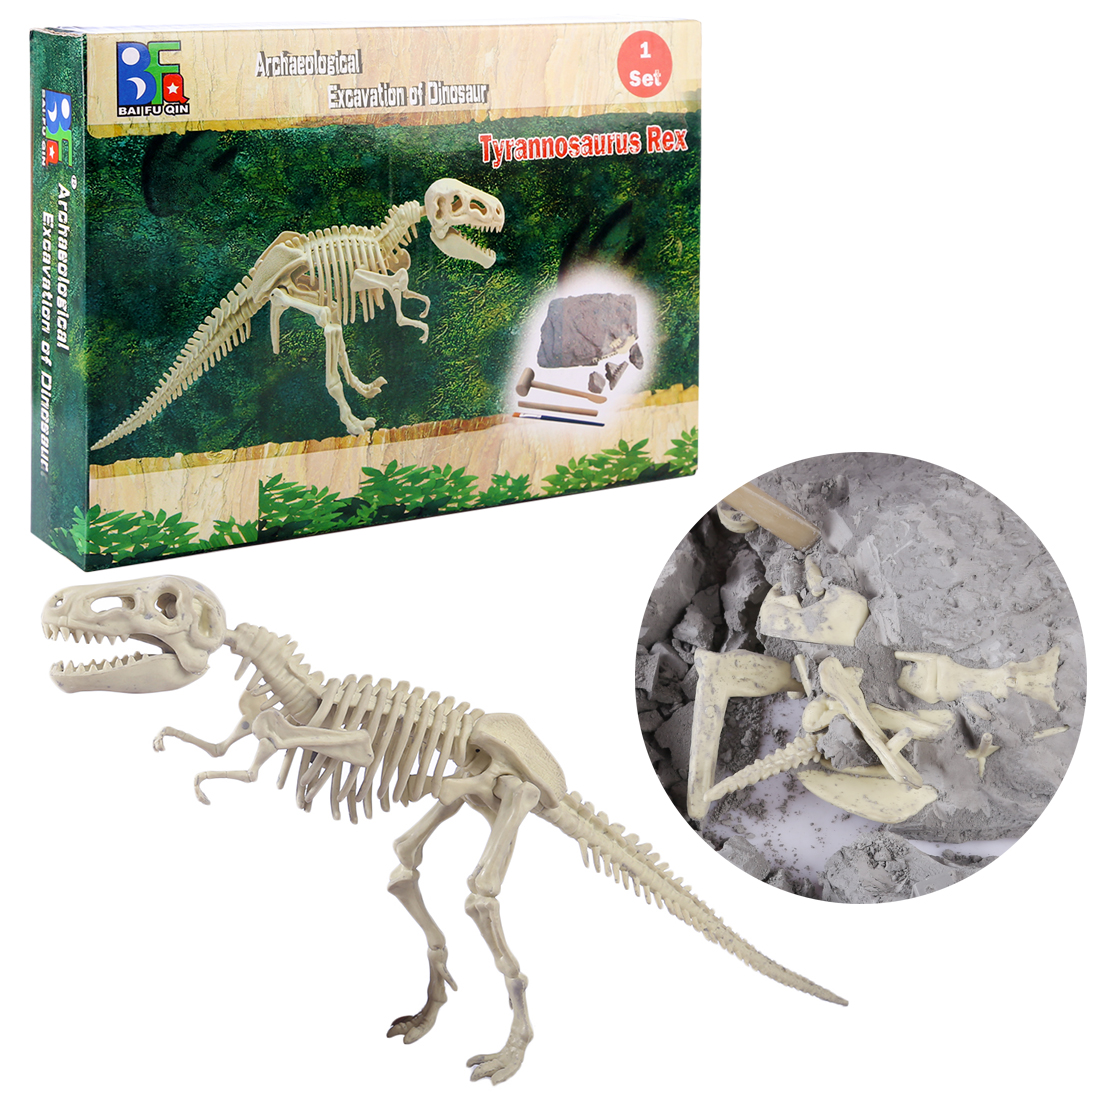 Dinosaur Excavation Kits Toy Children Creative Dinosaur Archaeology Model Excavation Educational Toys For Baby Children 5 Years